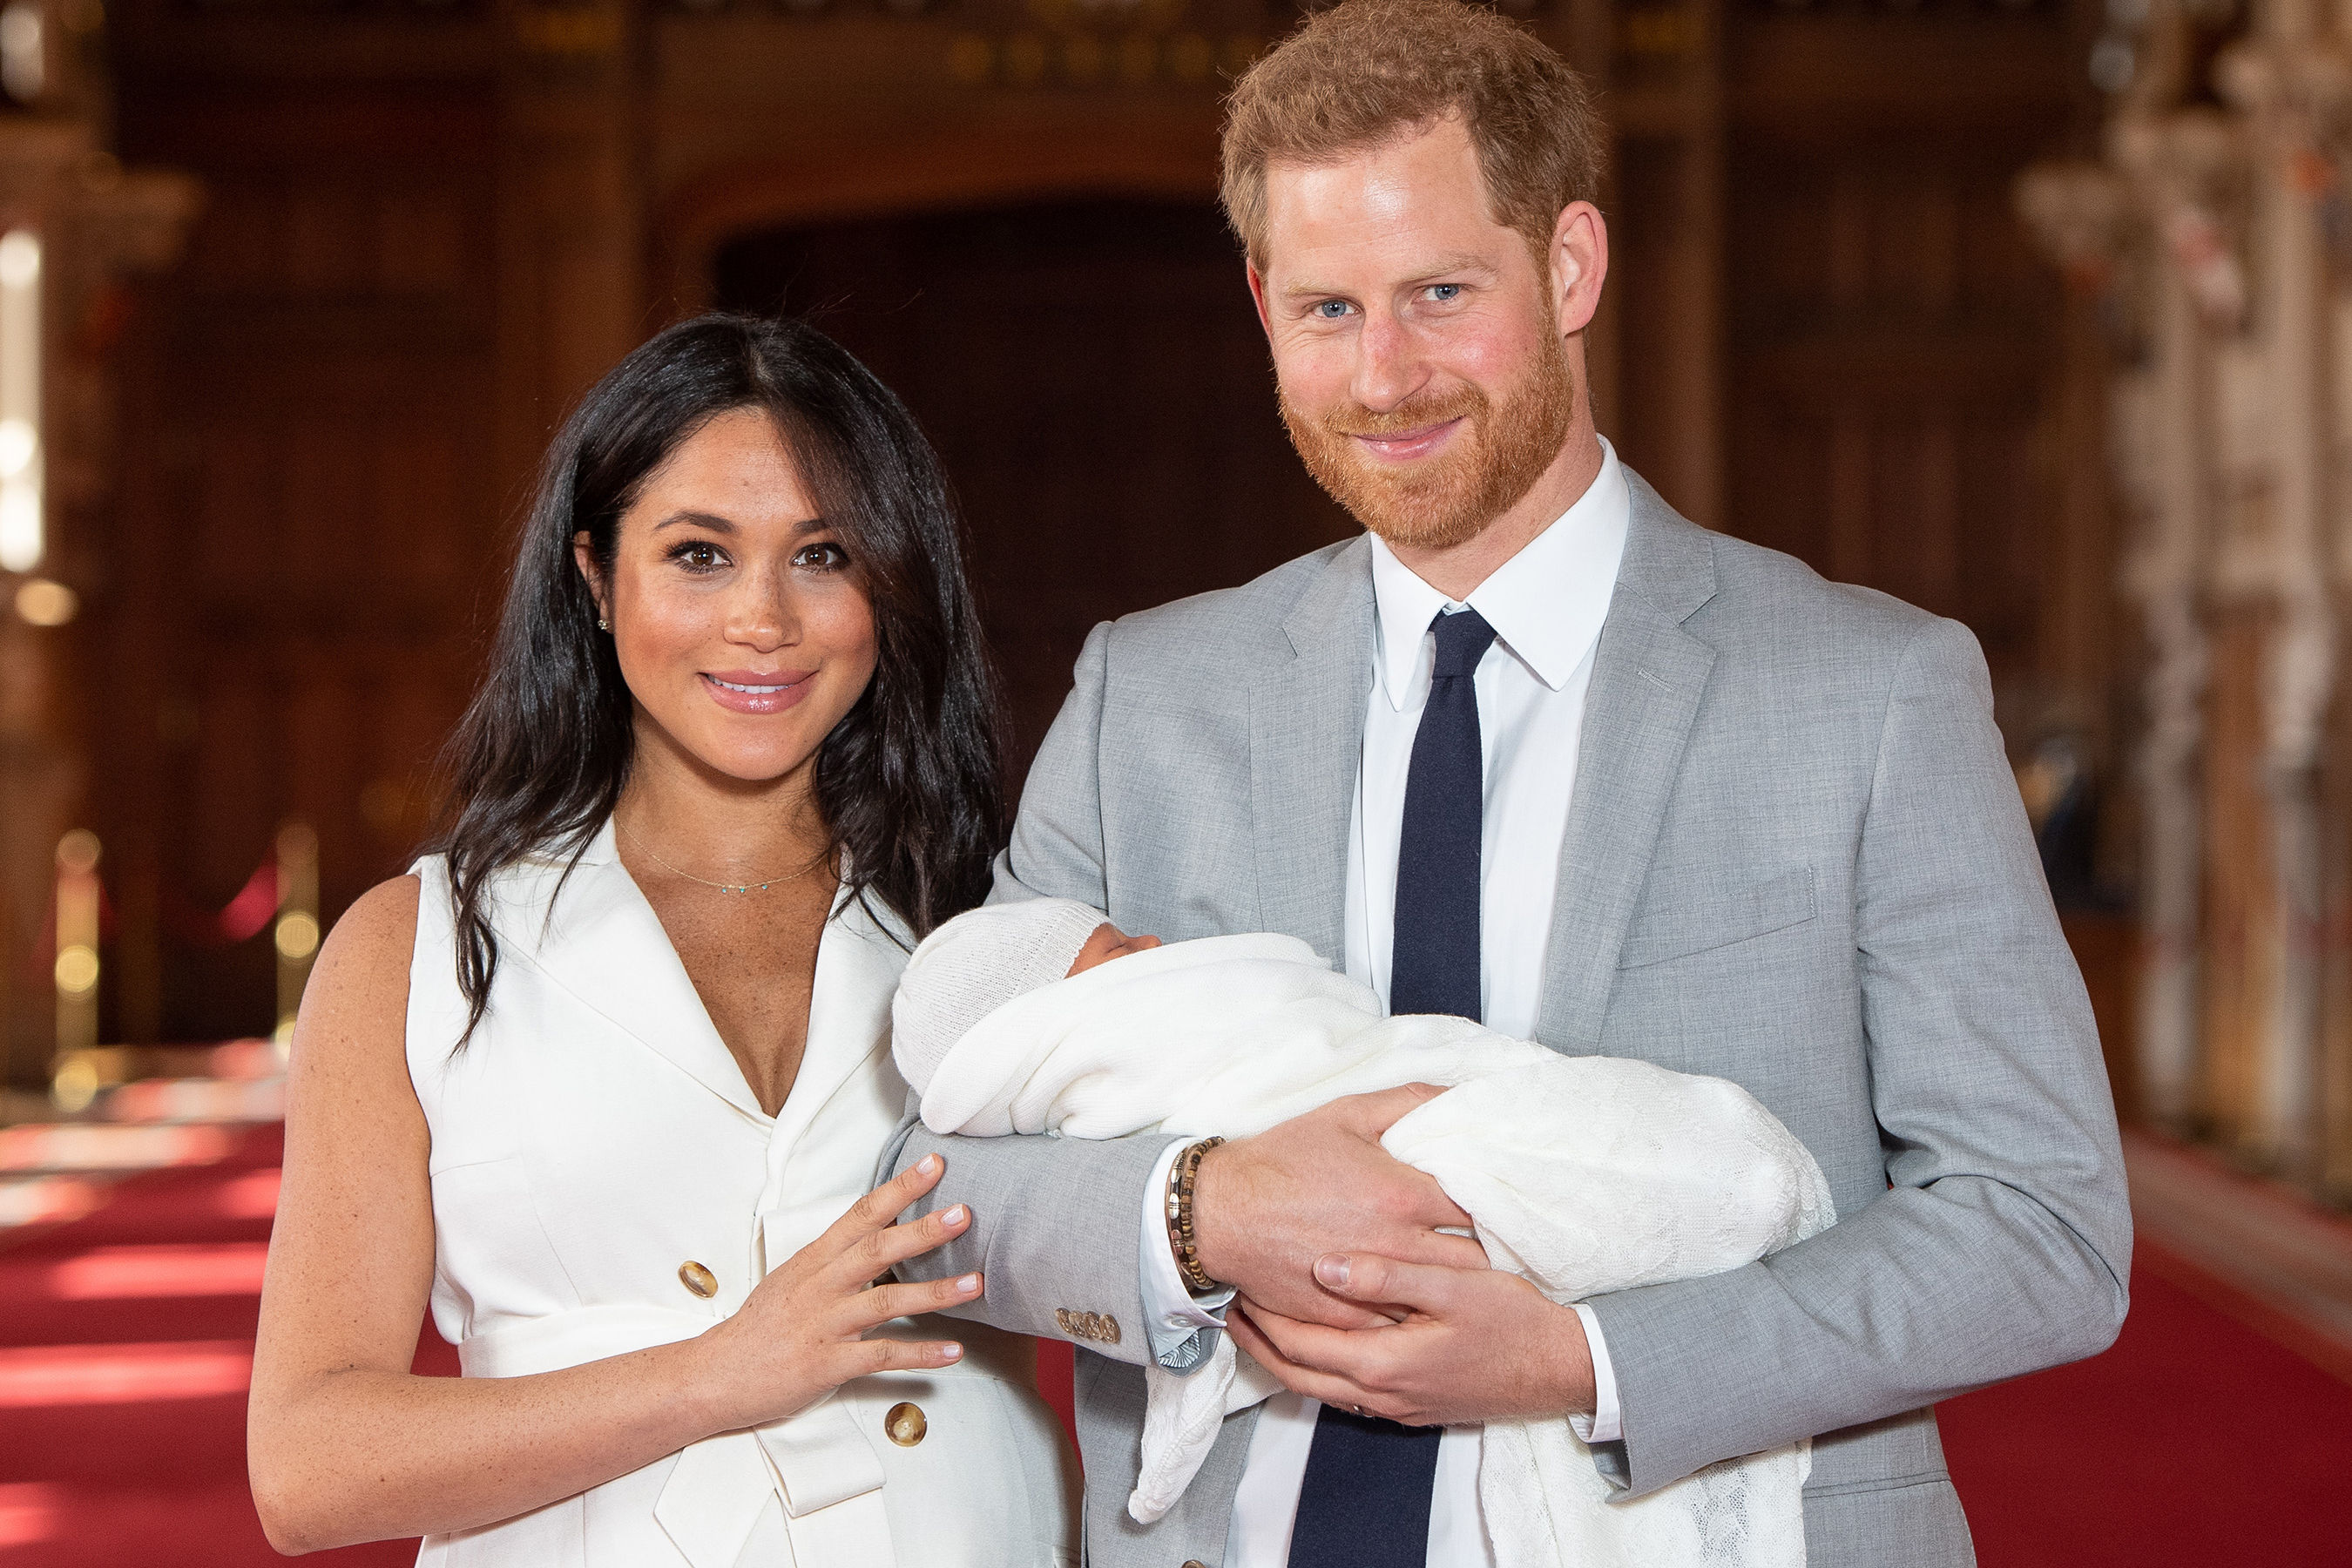 Prince Harry Proudly Gives a Sweet Update on 4-Month-Old Son Archie: 'He Is Getting So Big'